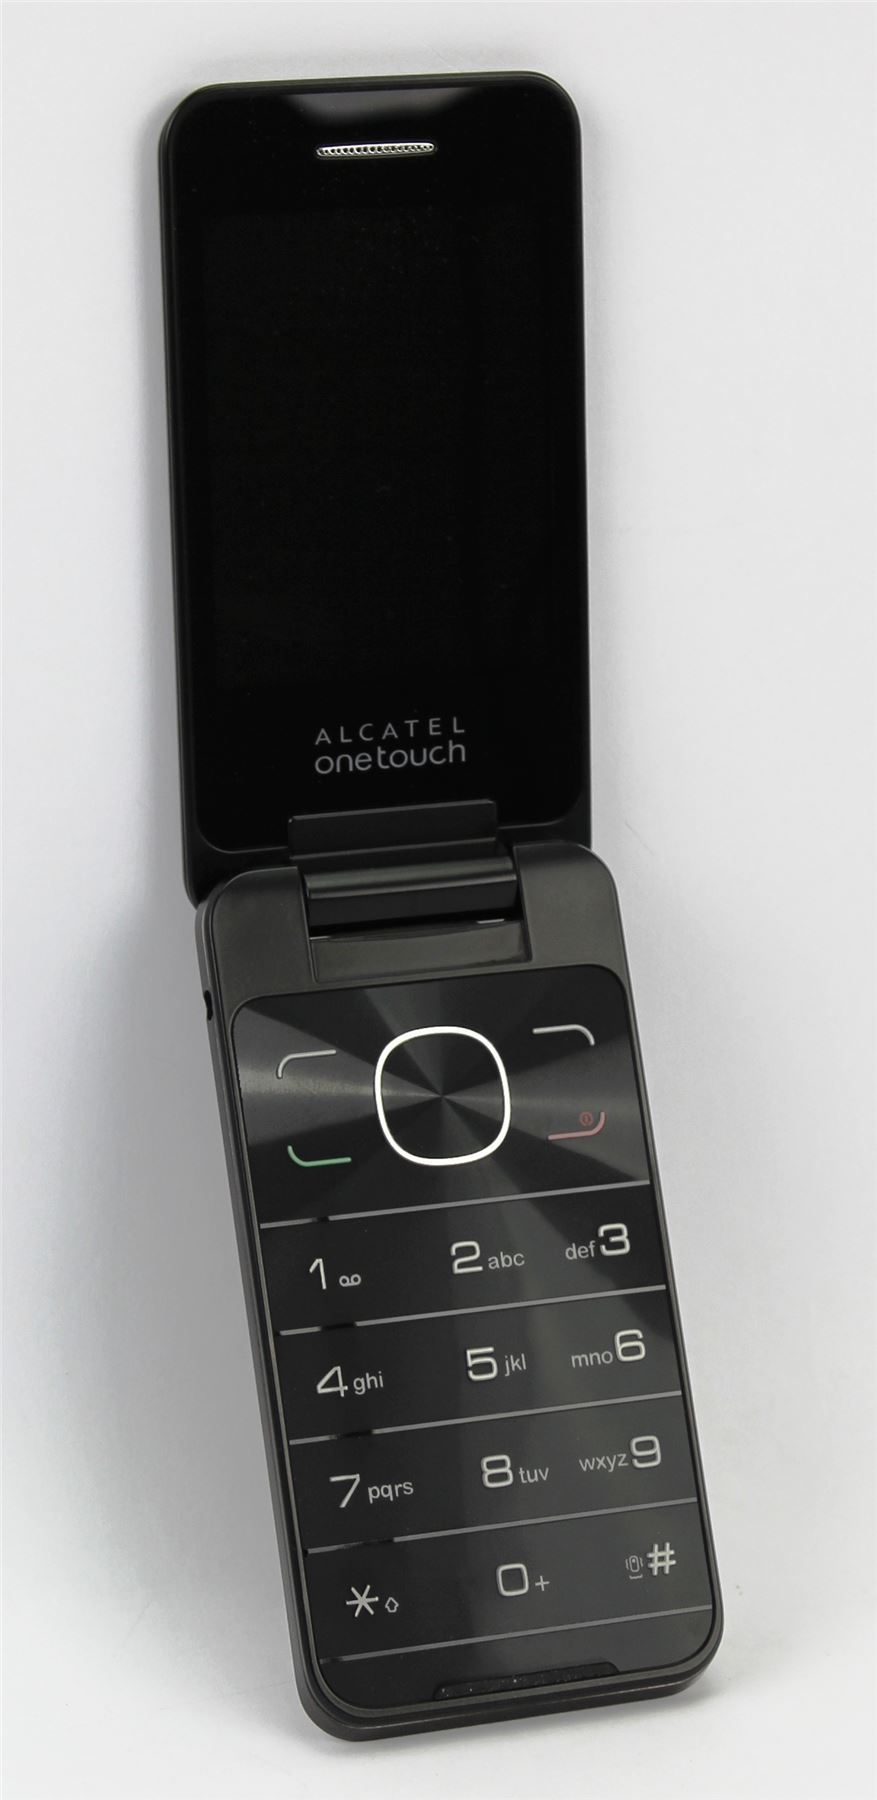 Alcatel One Touch 2012... Alcatel One Touch Flip Phone